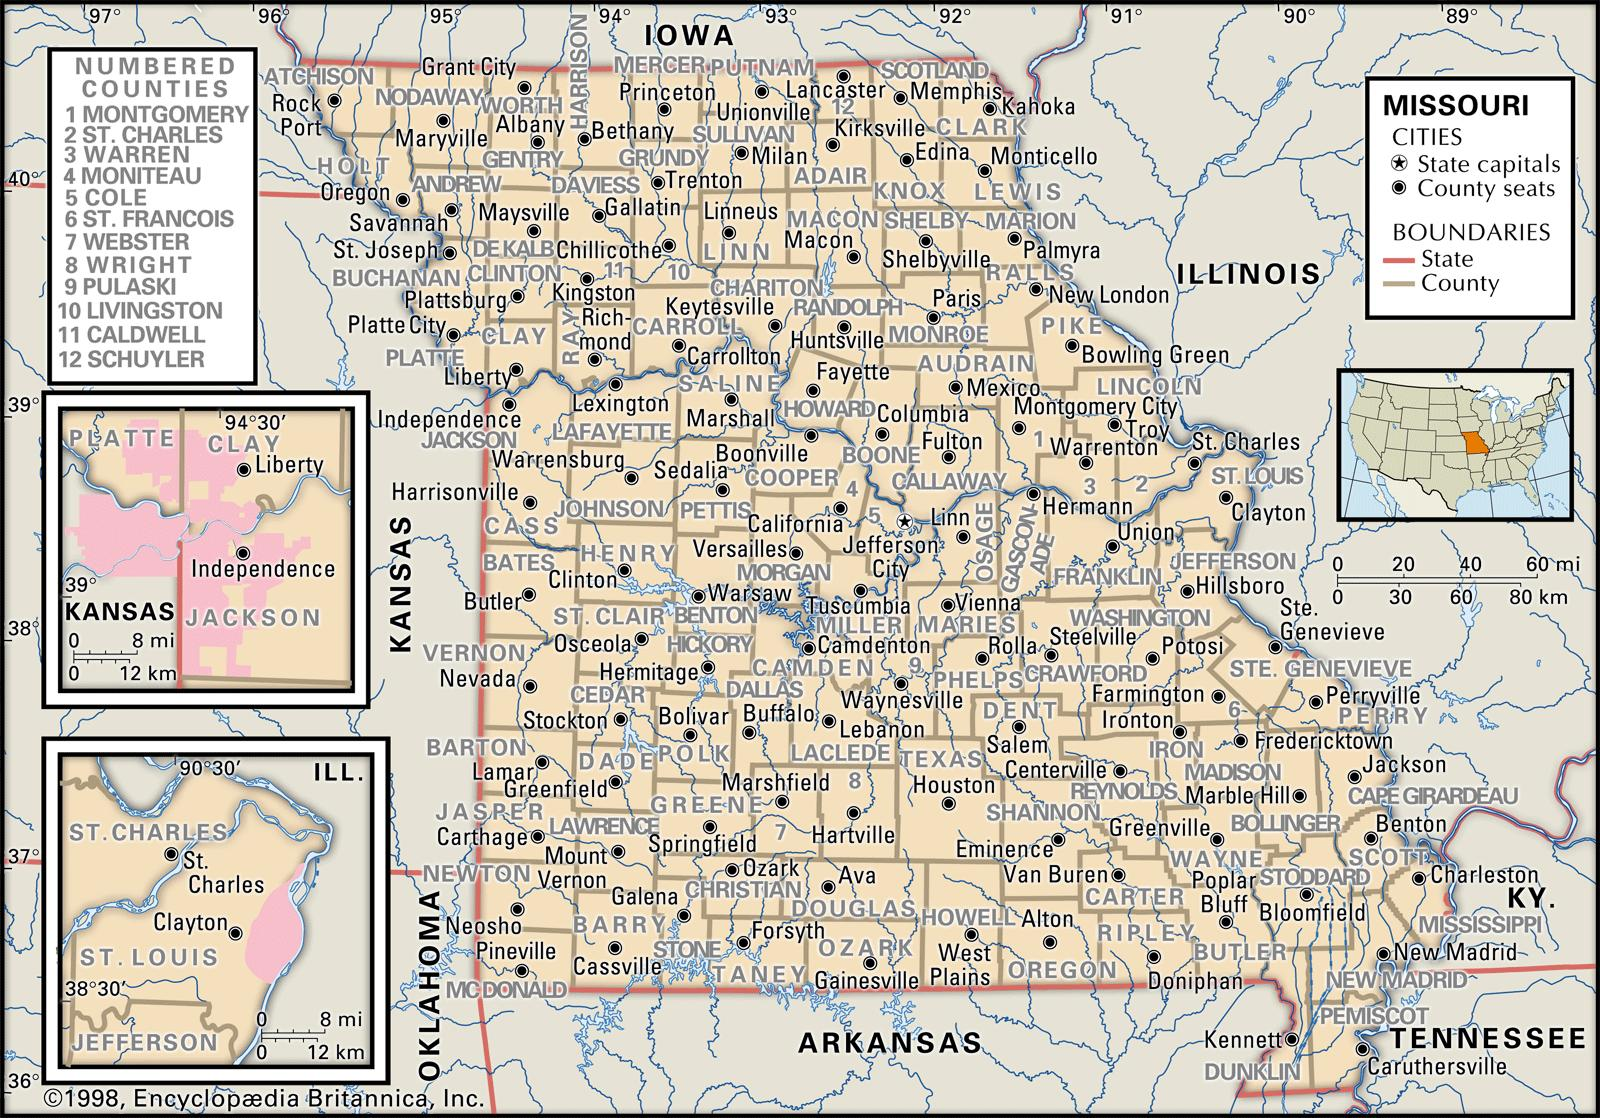 photograph relating to Kansas County Map Printable identify Nation and County Maps of Missouri